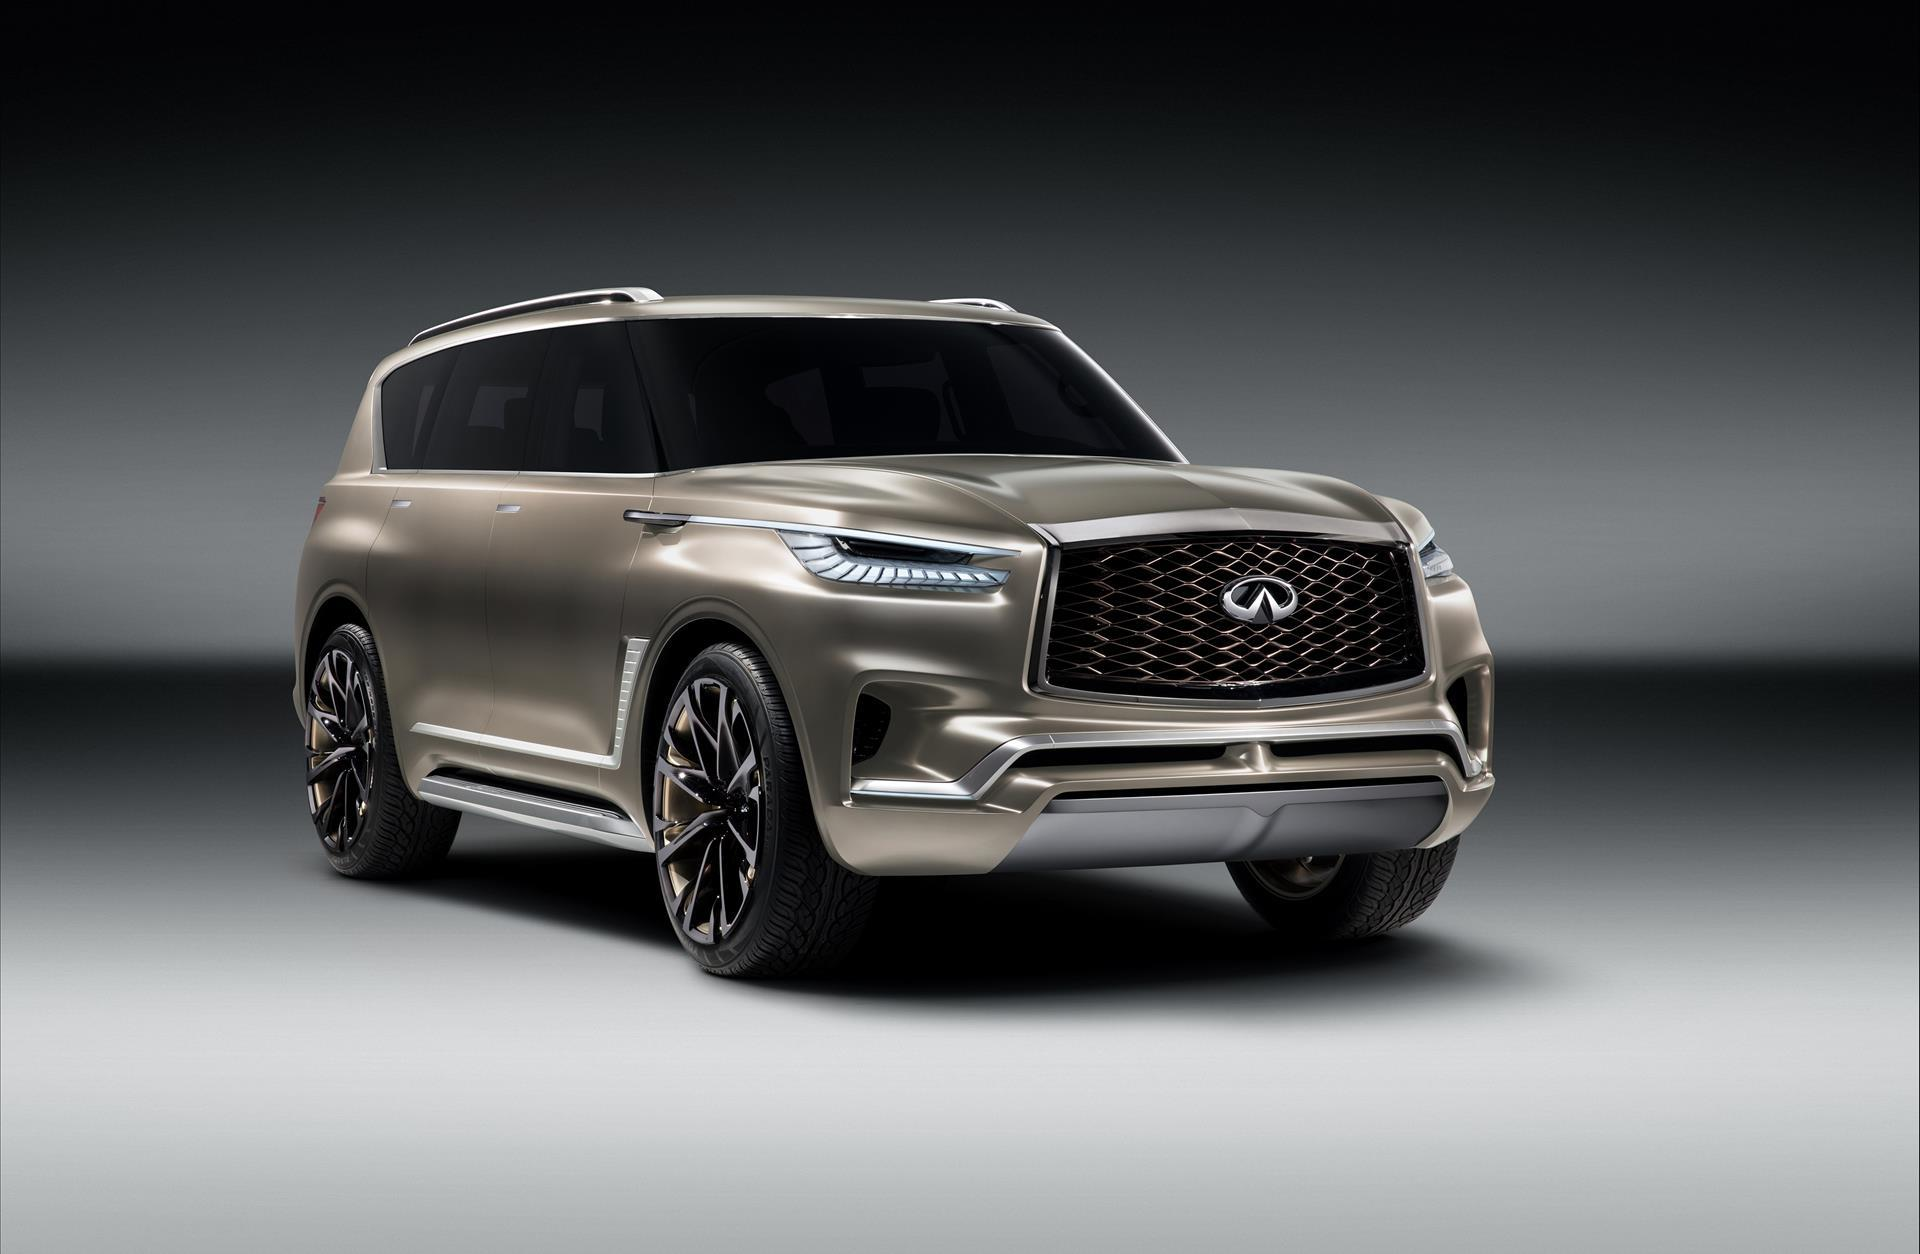 2017 Infiniti Qx80 Monograph Concept News And Information